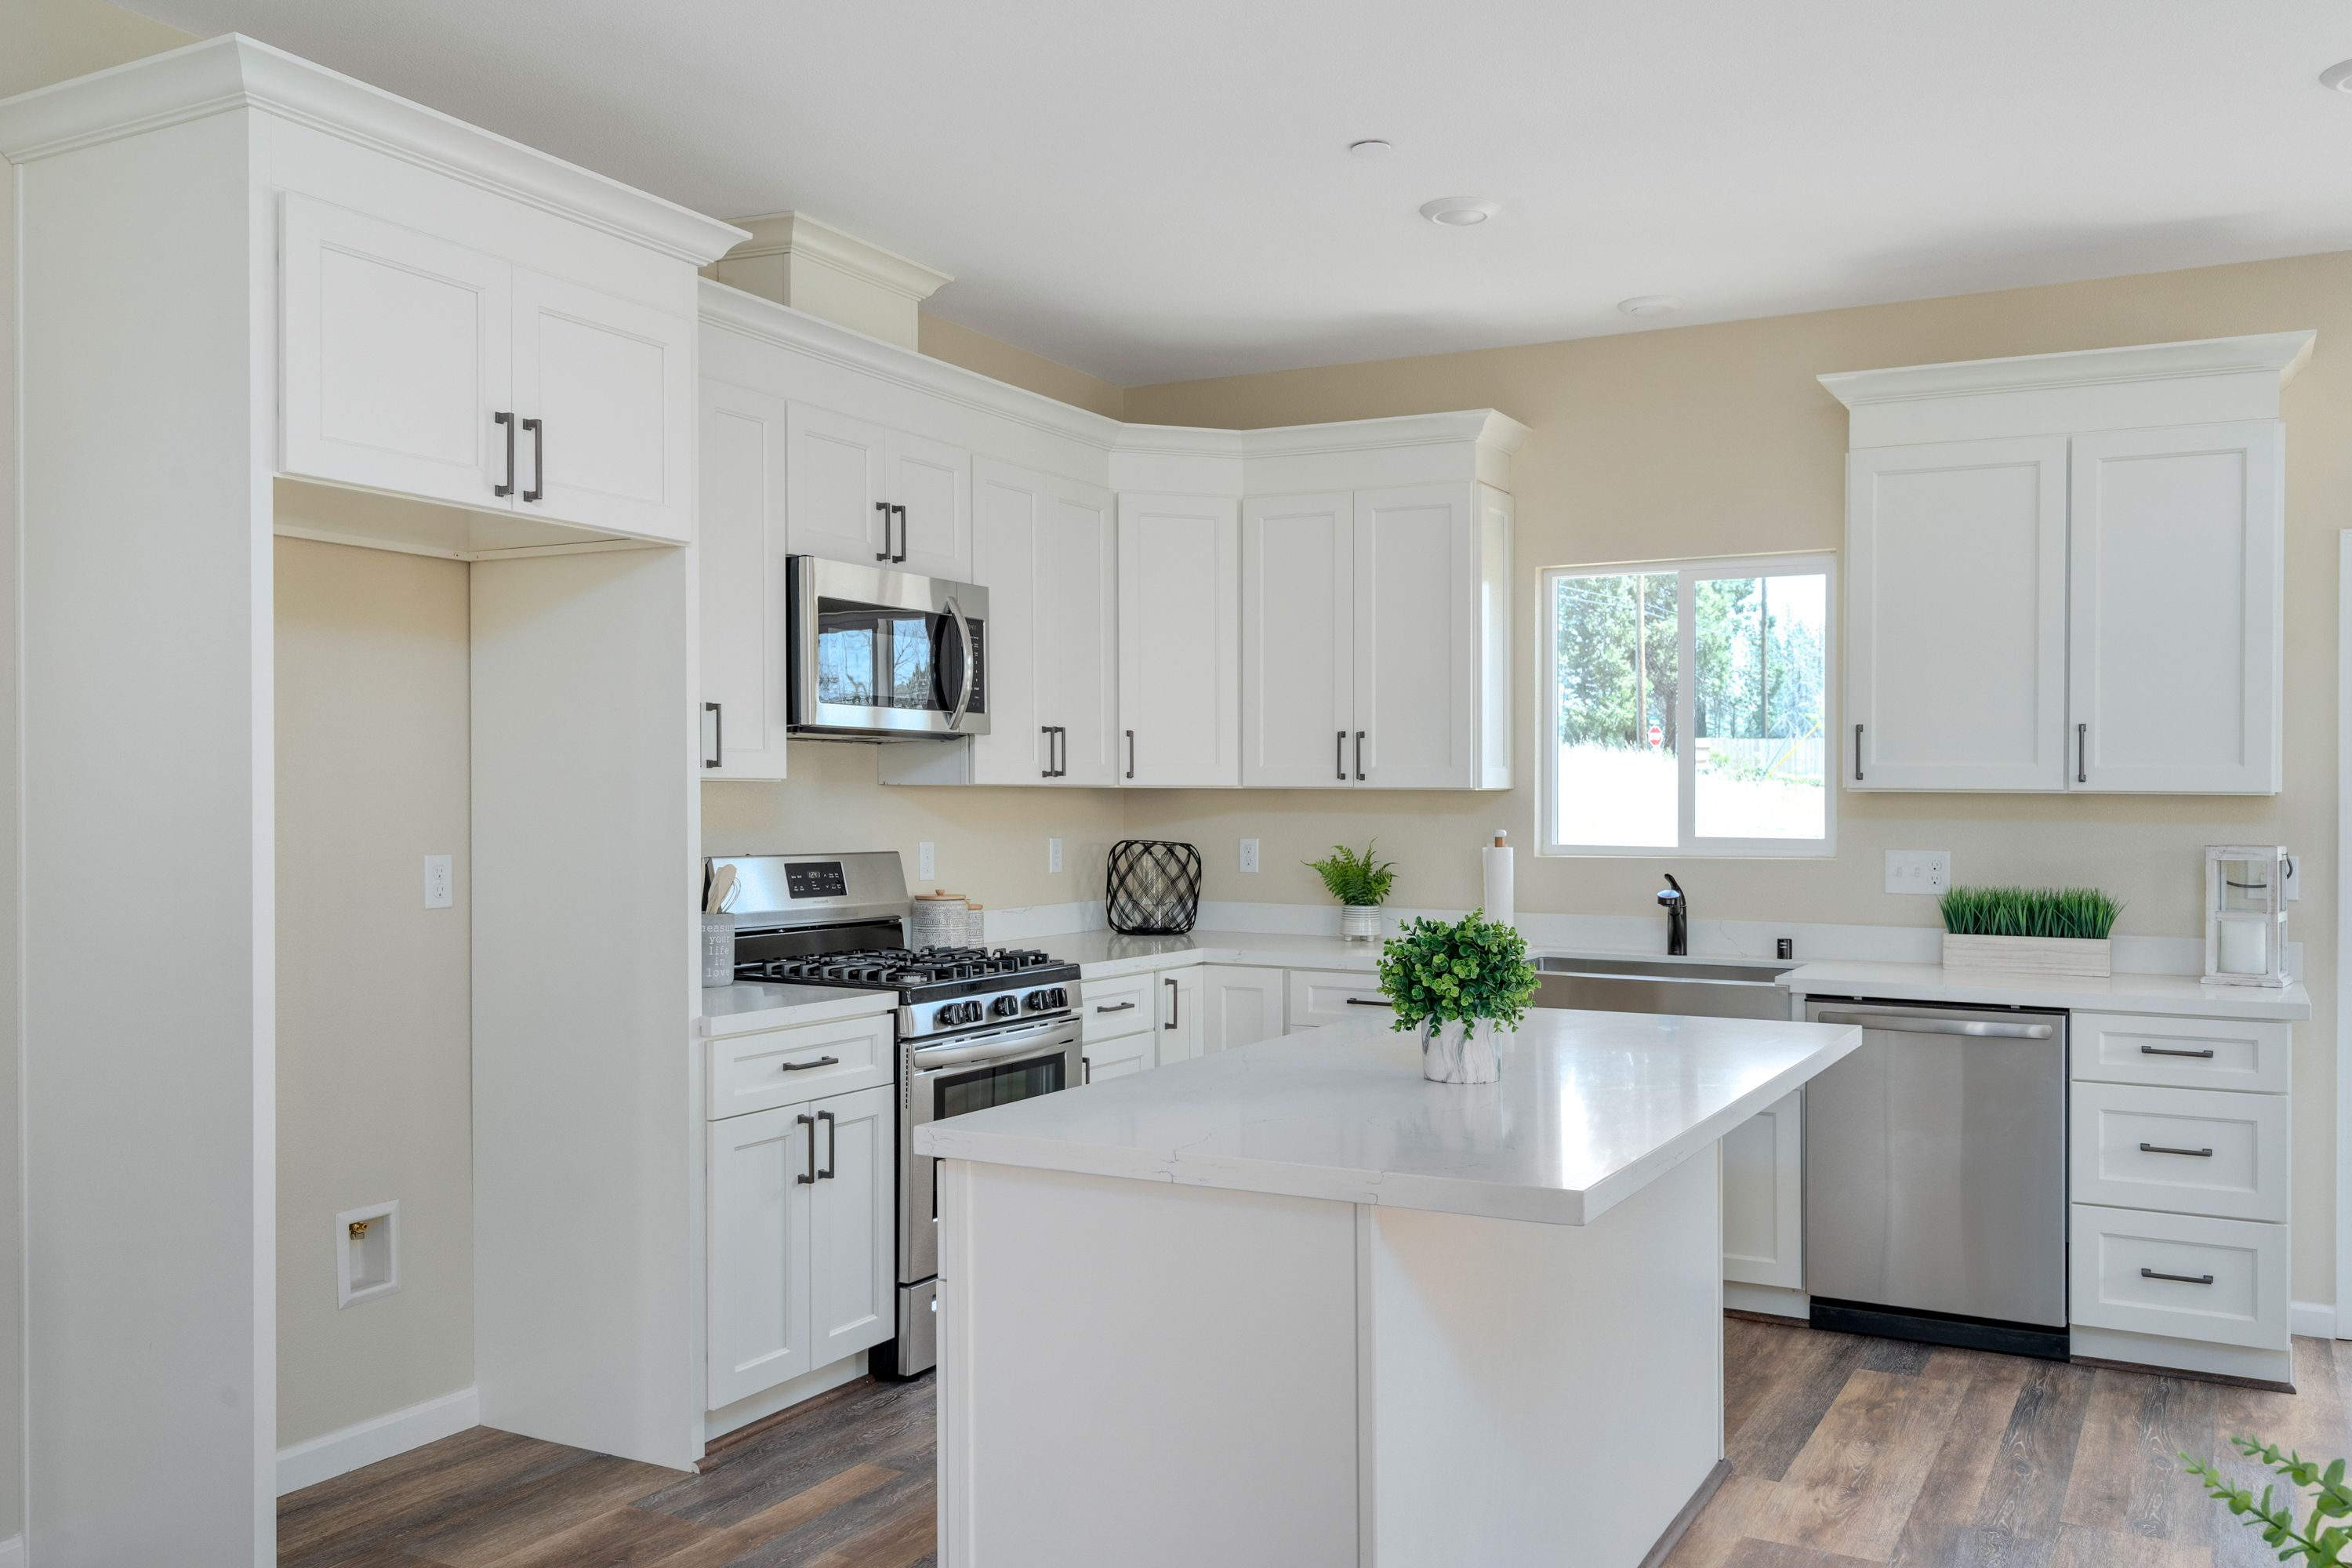 Kitchen featured in the 280 Craft Lane By Silvermark Luxury Homes in Chico, CA